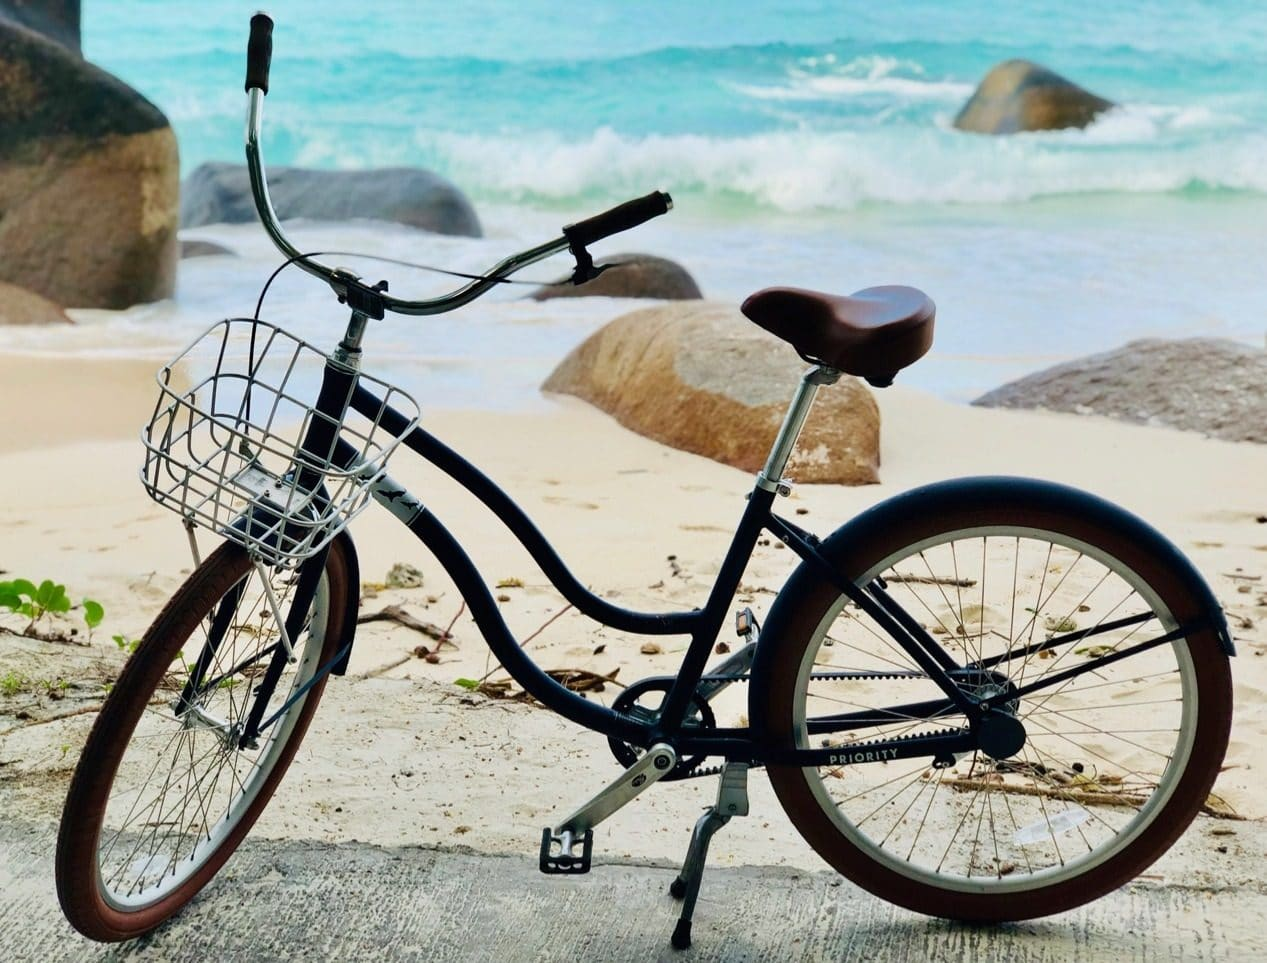 Bike at beach Silhouette Island, Hilton Labriz Seychelles Resort and Spa Tips and practical information about Seychelles